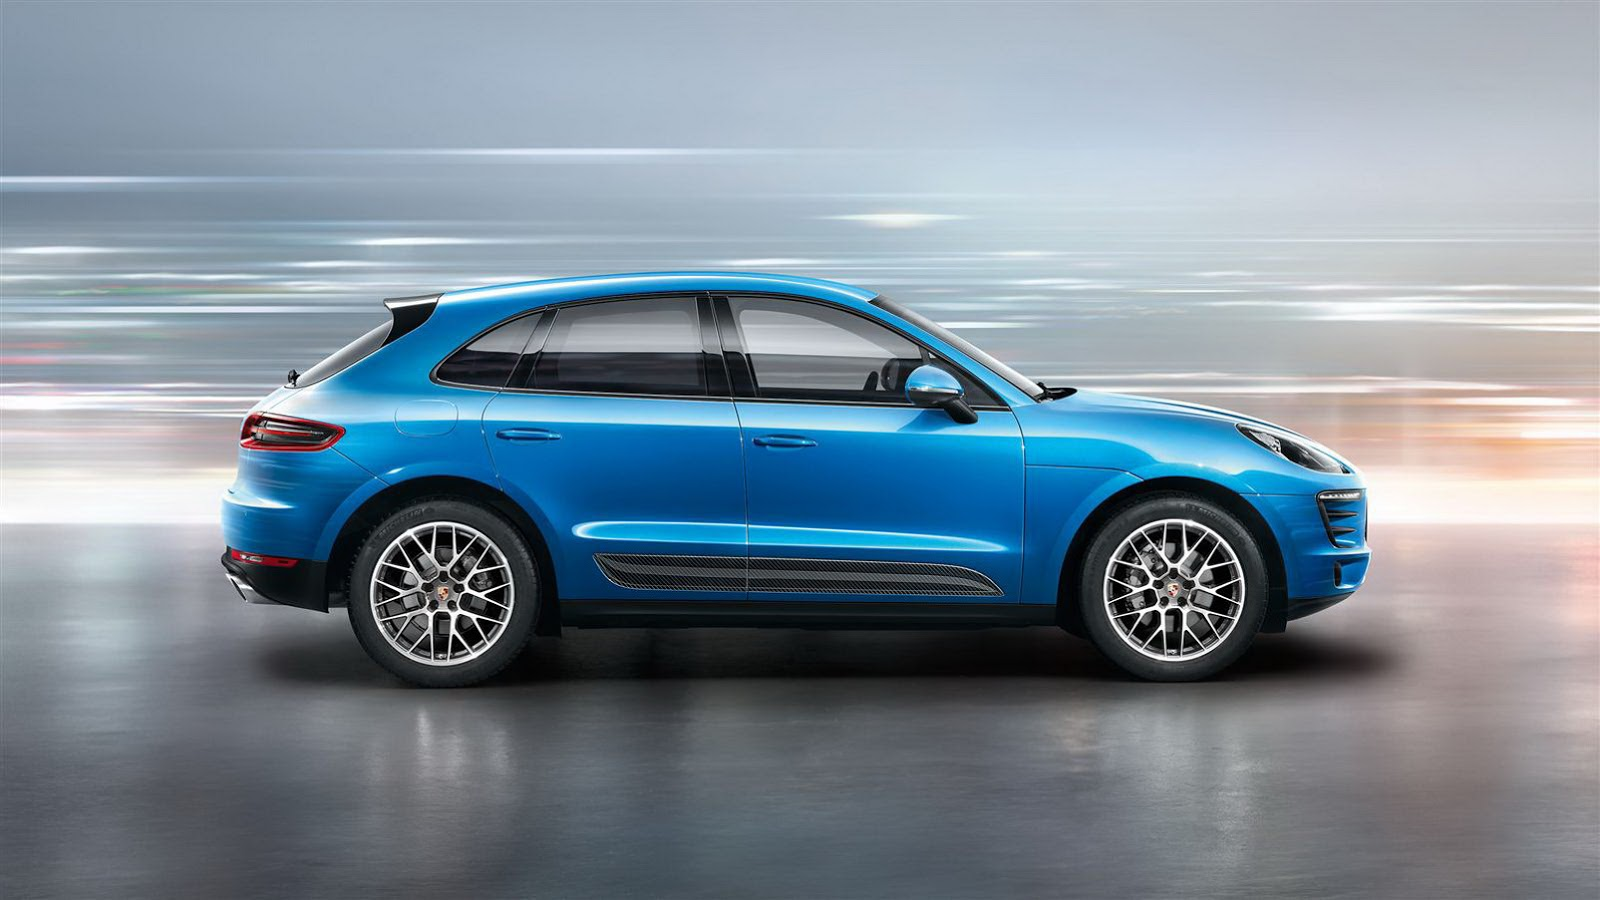 china 39 s zotye clones porsche macan with new t700 carscoops. Black Bedroom Furniture Sets. Home Design Ideas